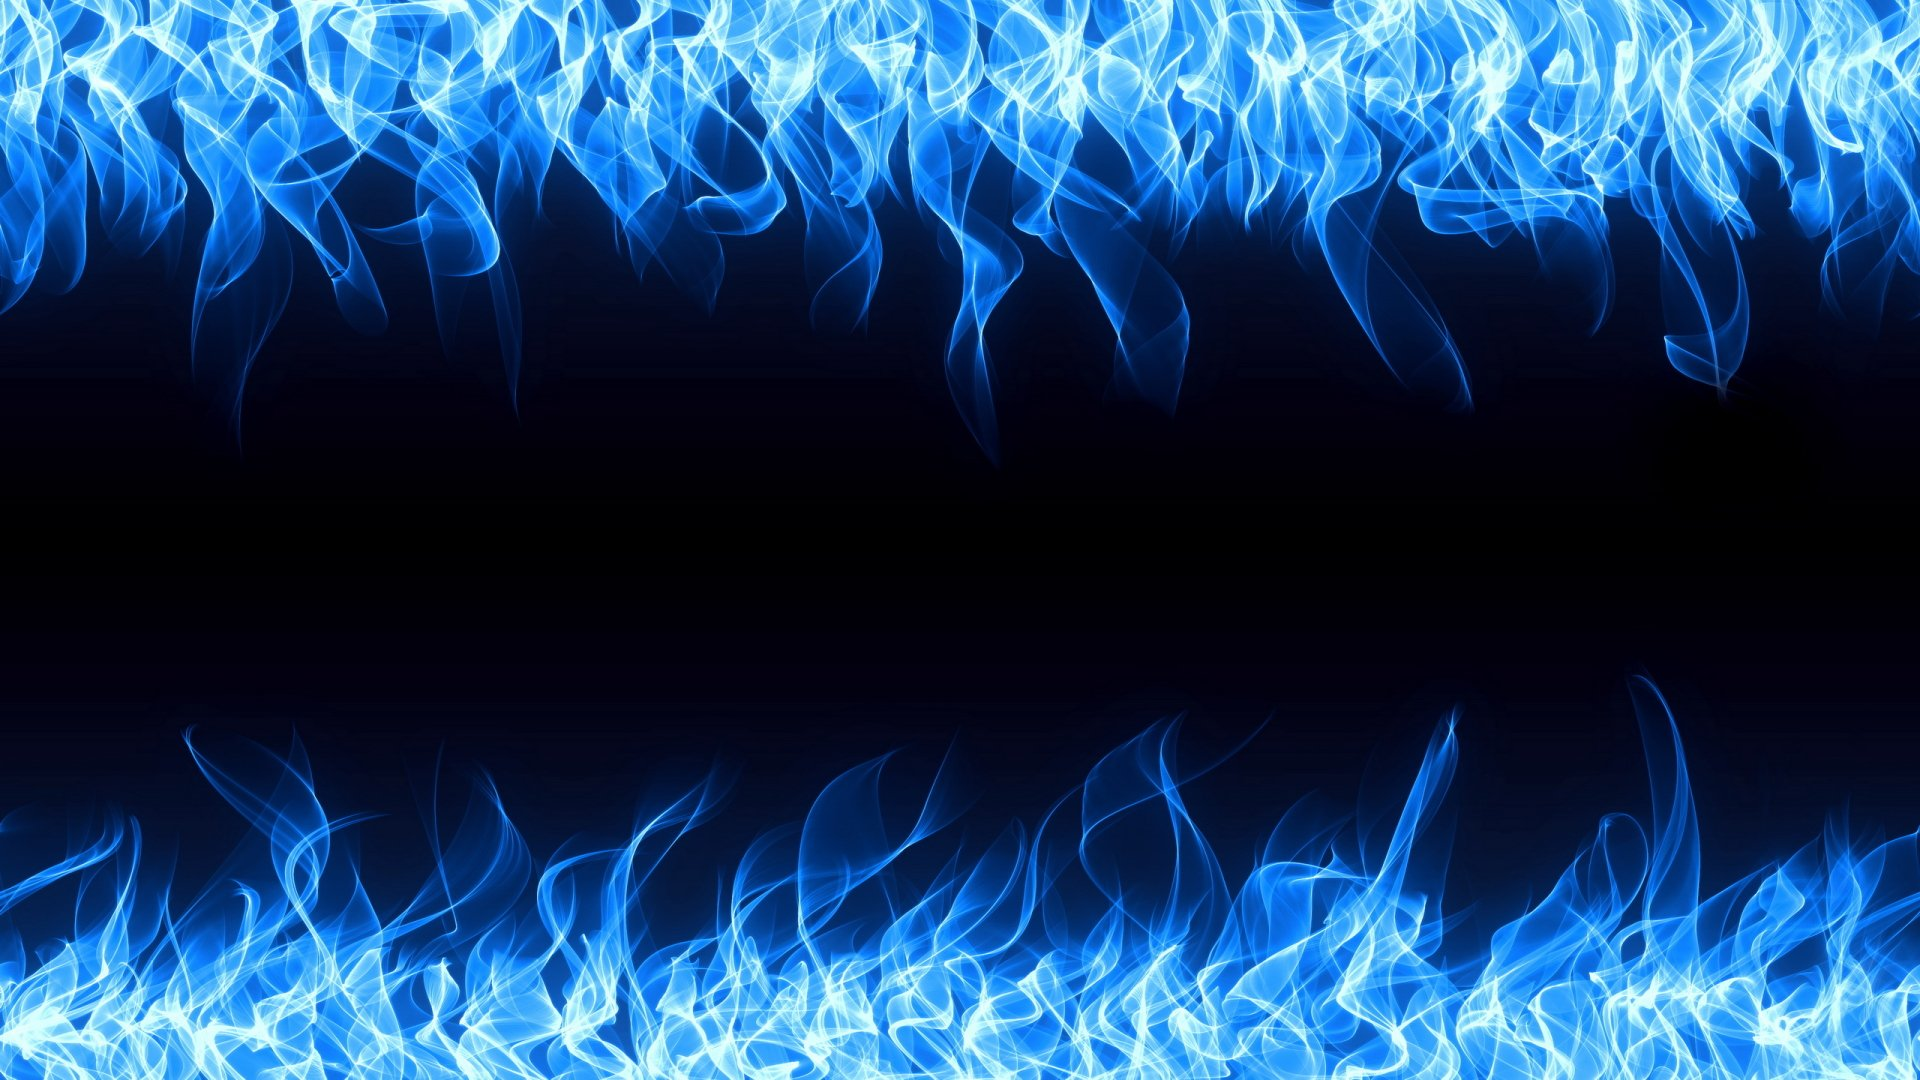 84 Flame Hd Wallpapers Background Images Wallpaper Abyss